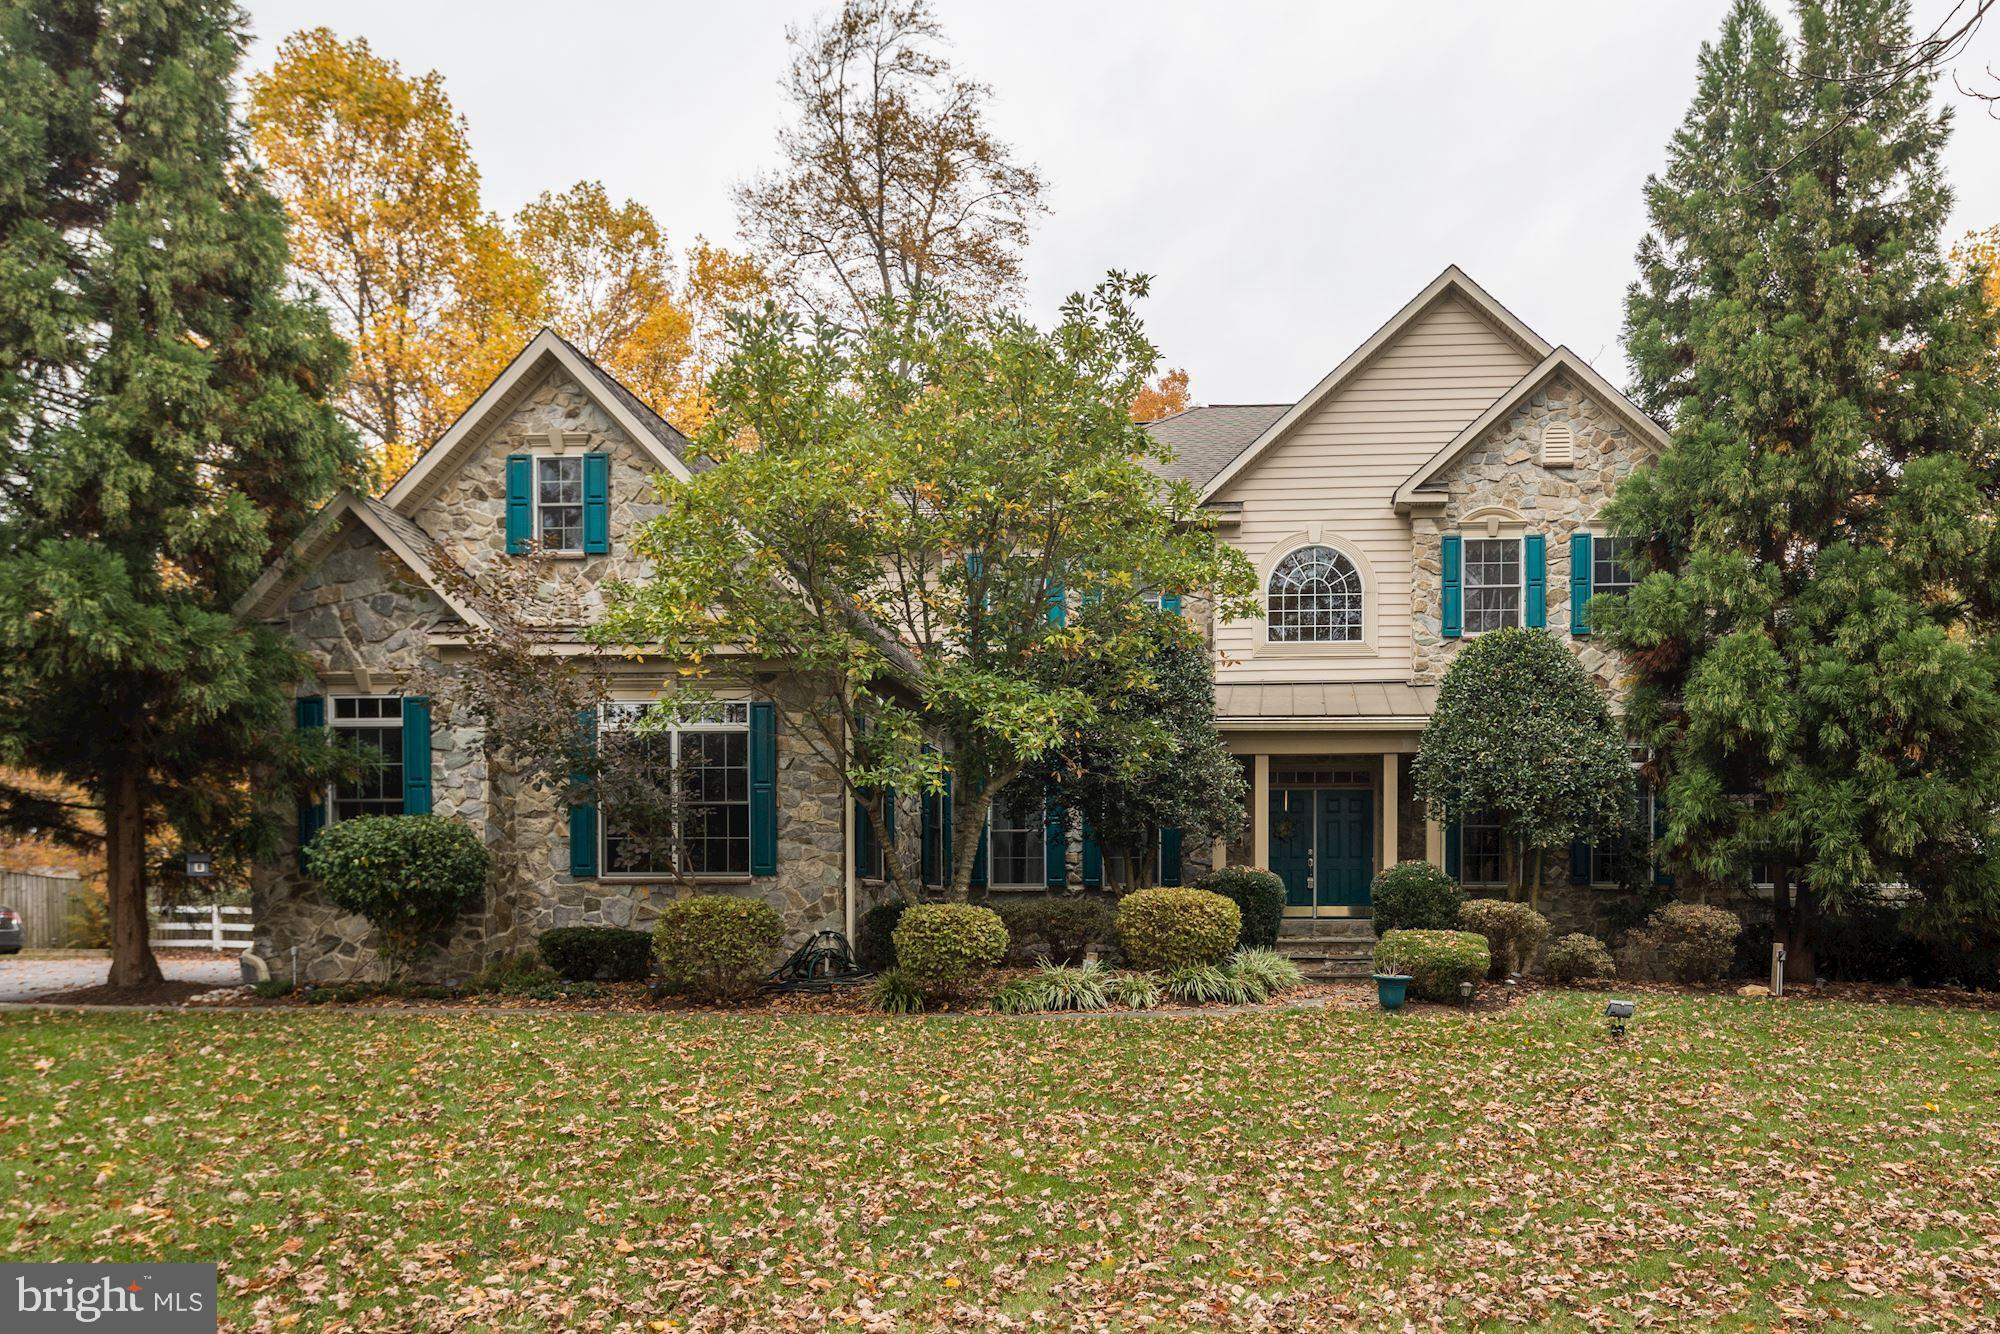 2030 REESE ROAD, WESTMINSTER, MD 21157